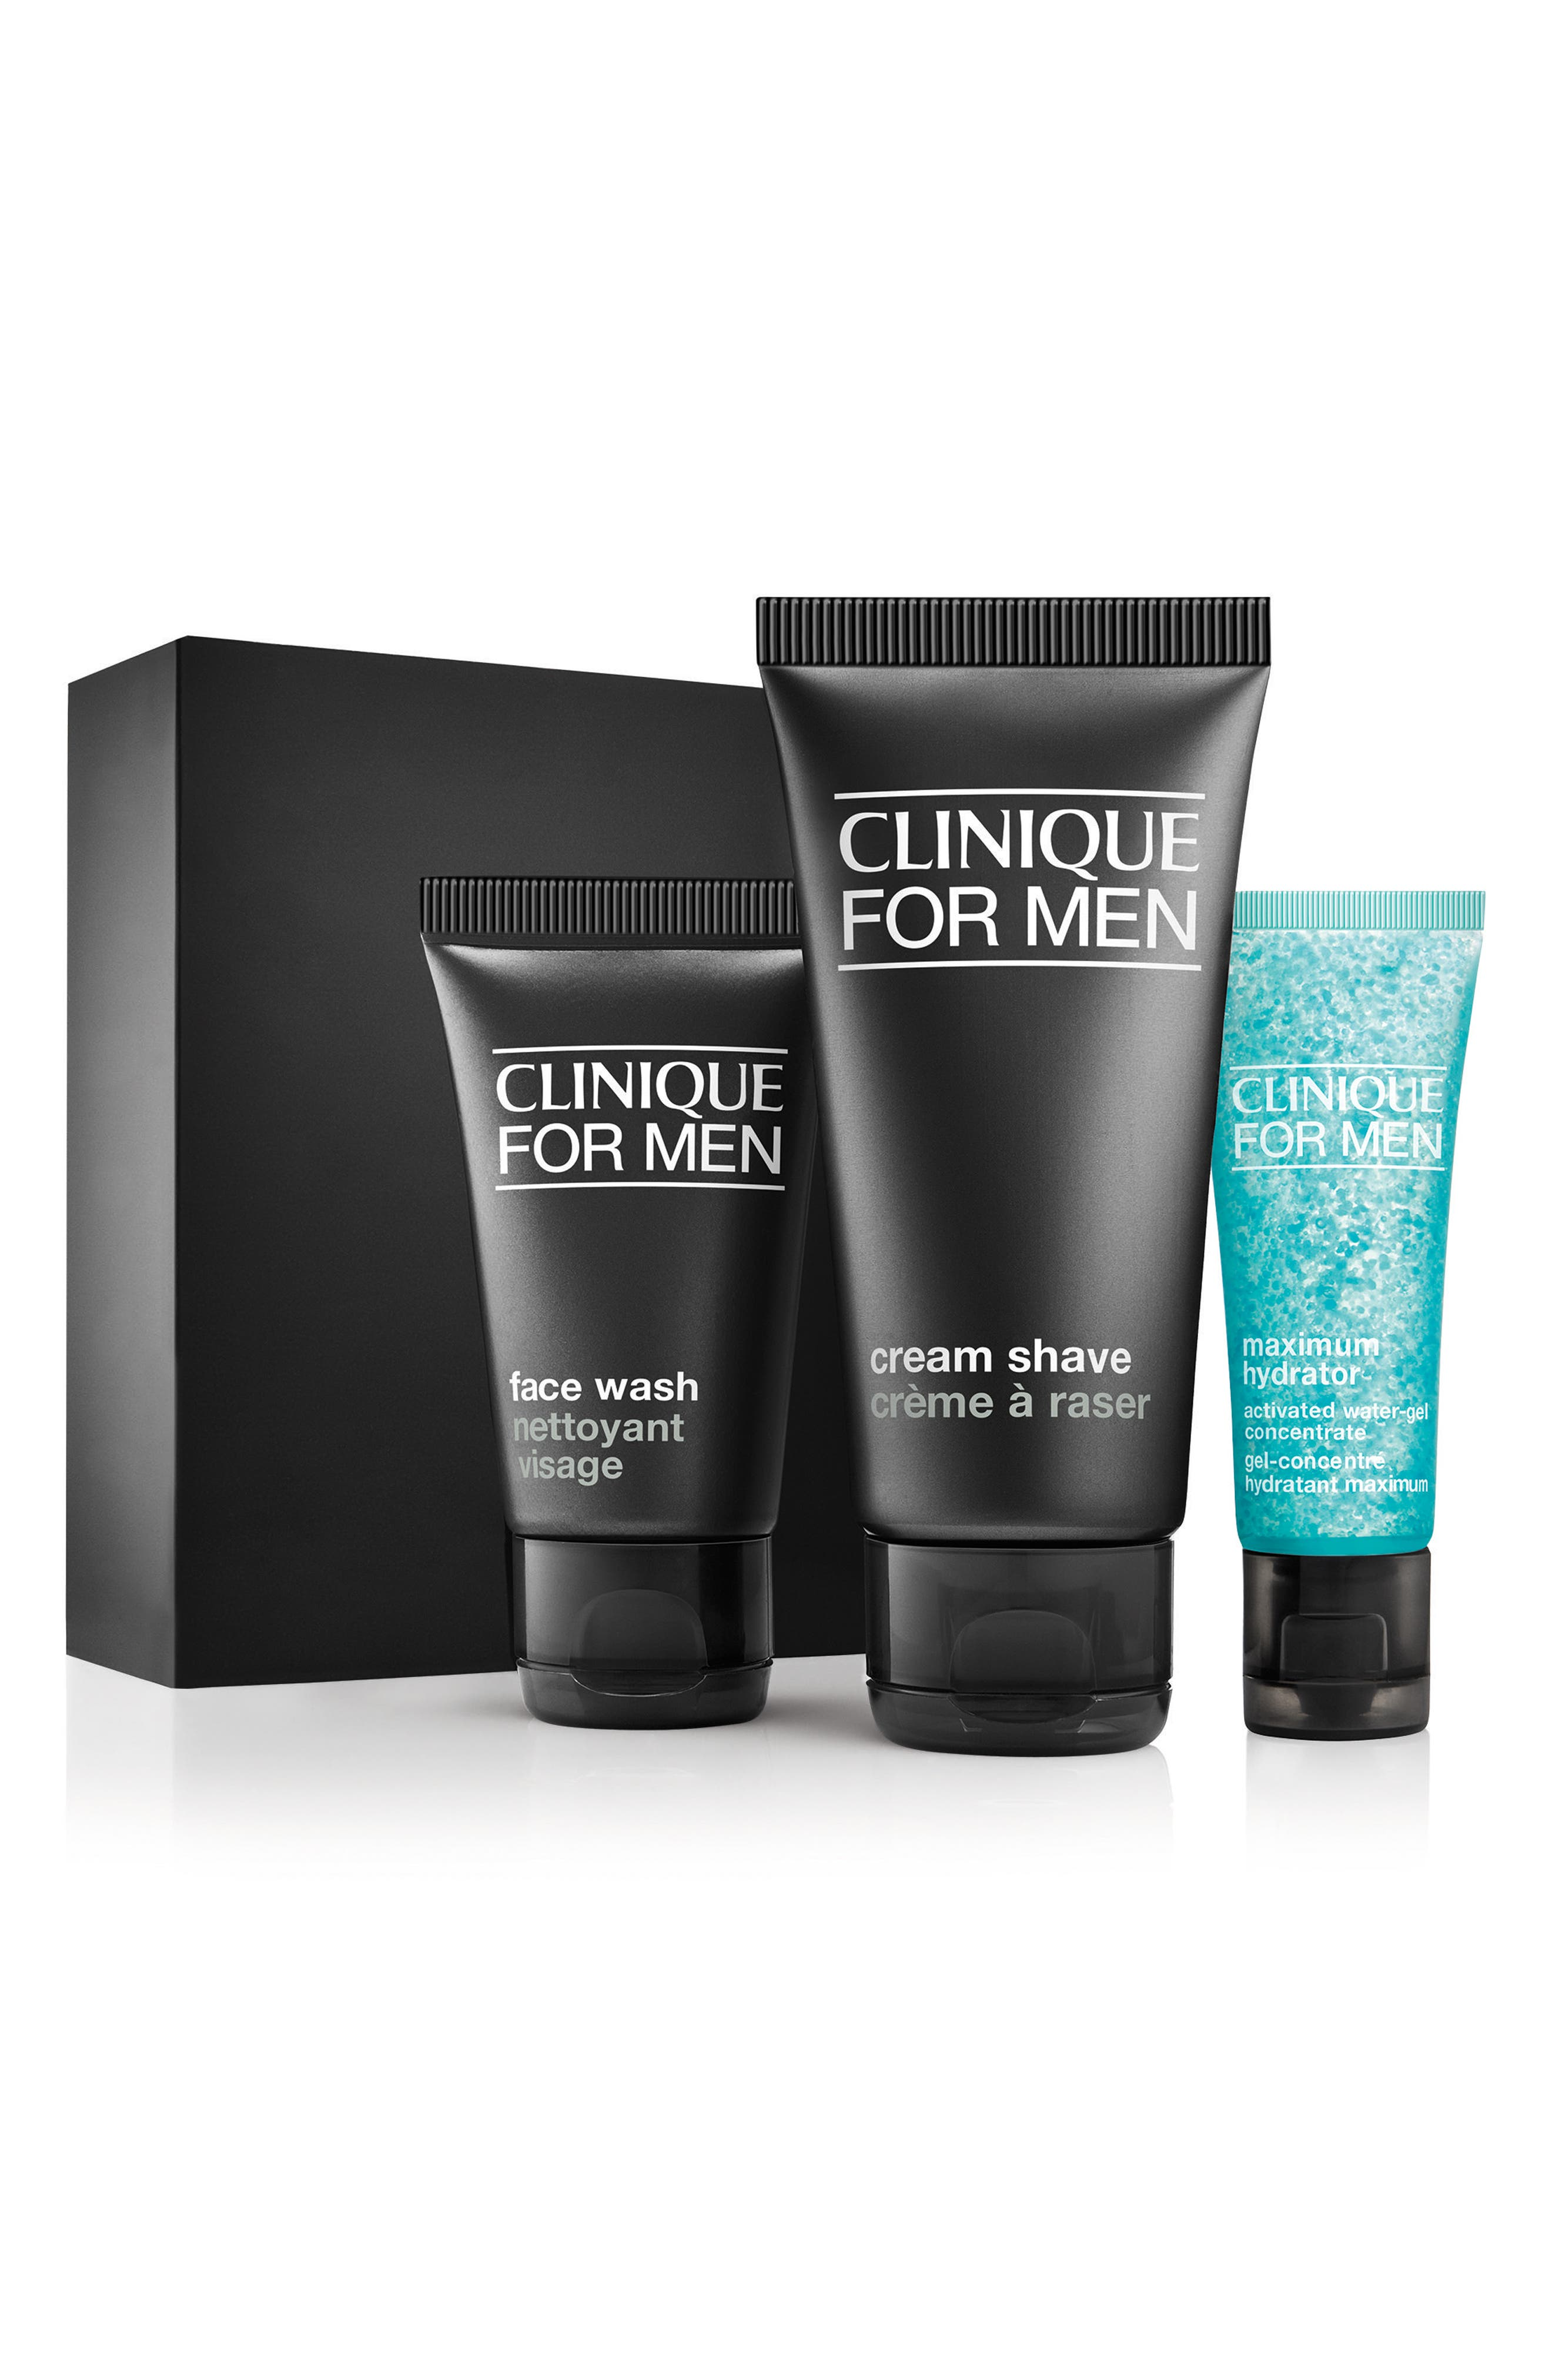 Clinique for Men Daily Intense Hydration Starter Kit for Dry to Dry Combination Skin Types